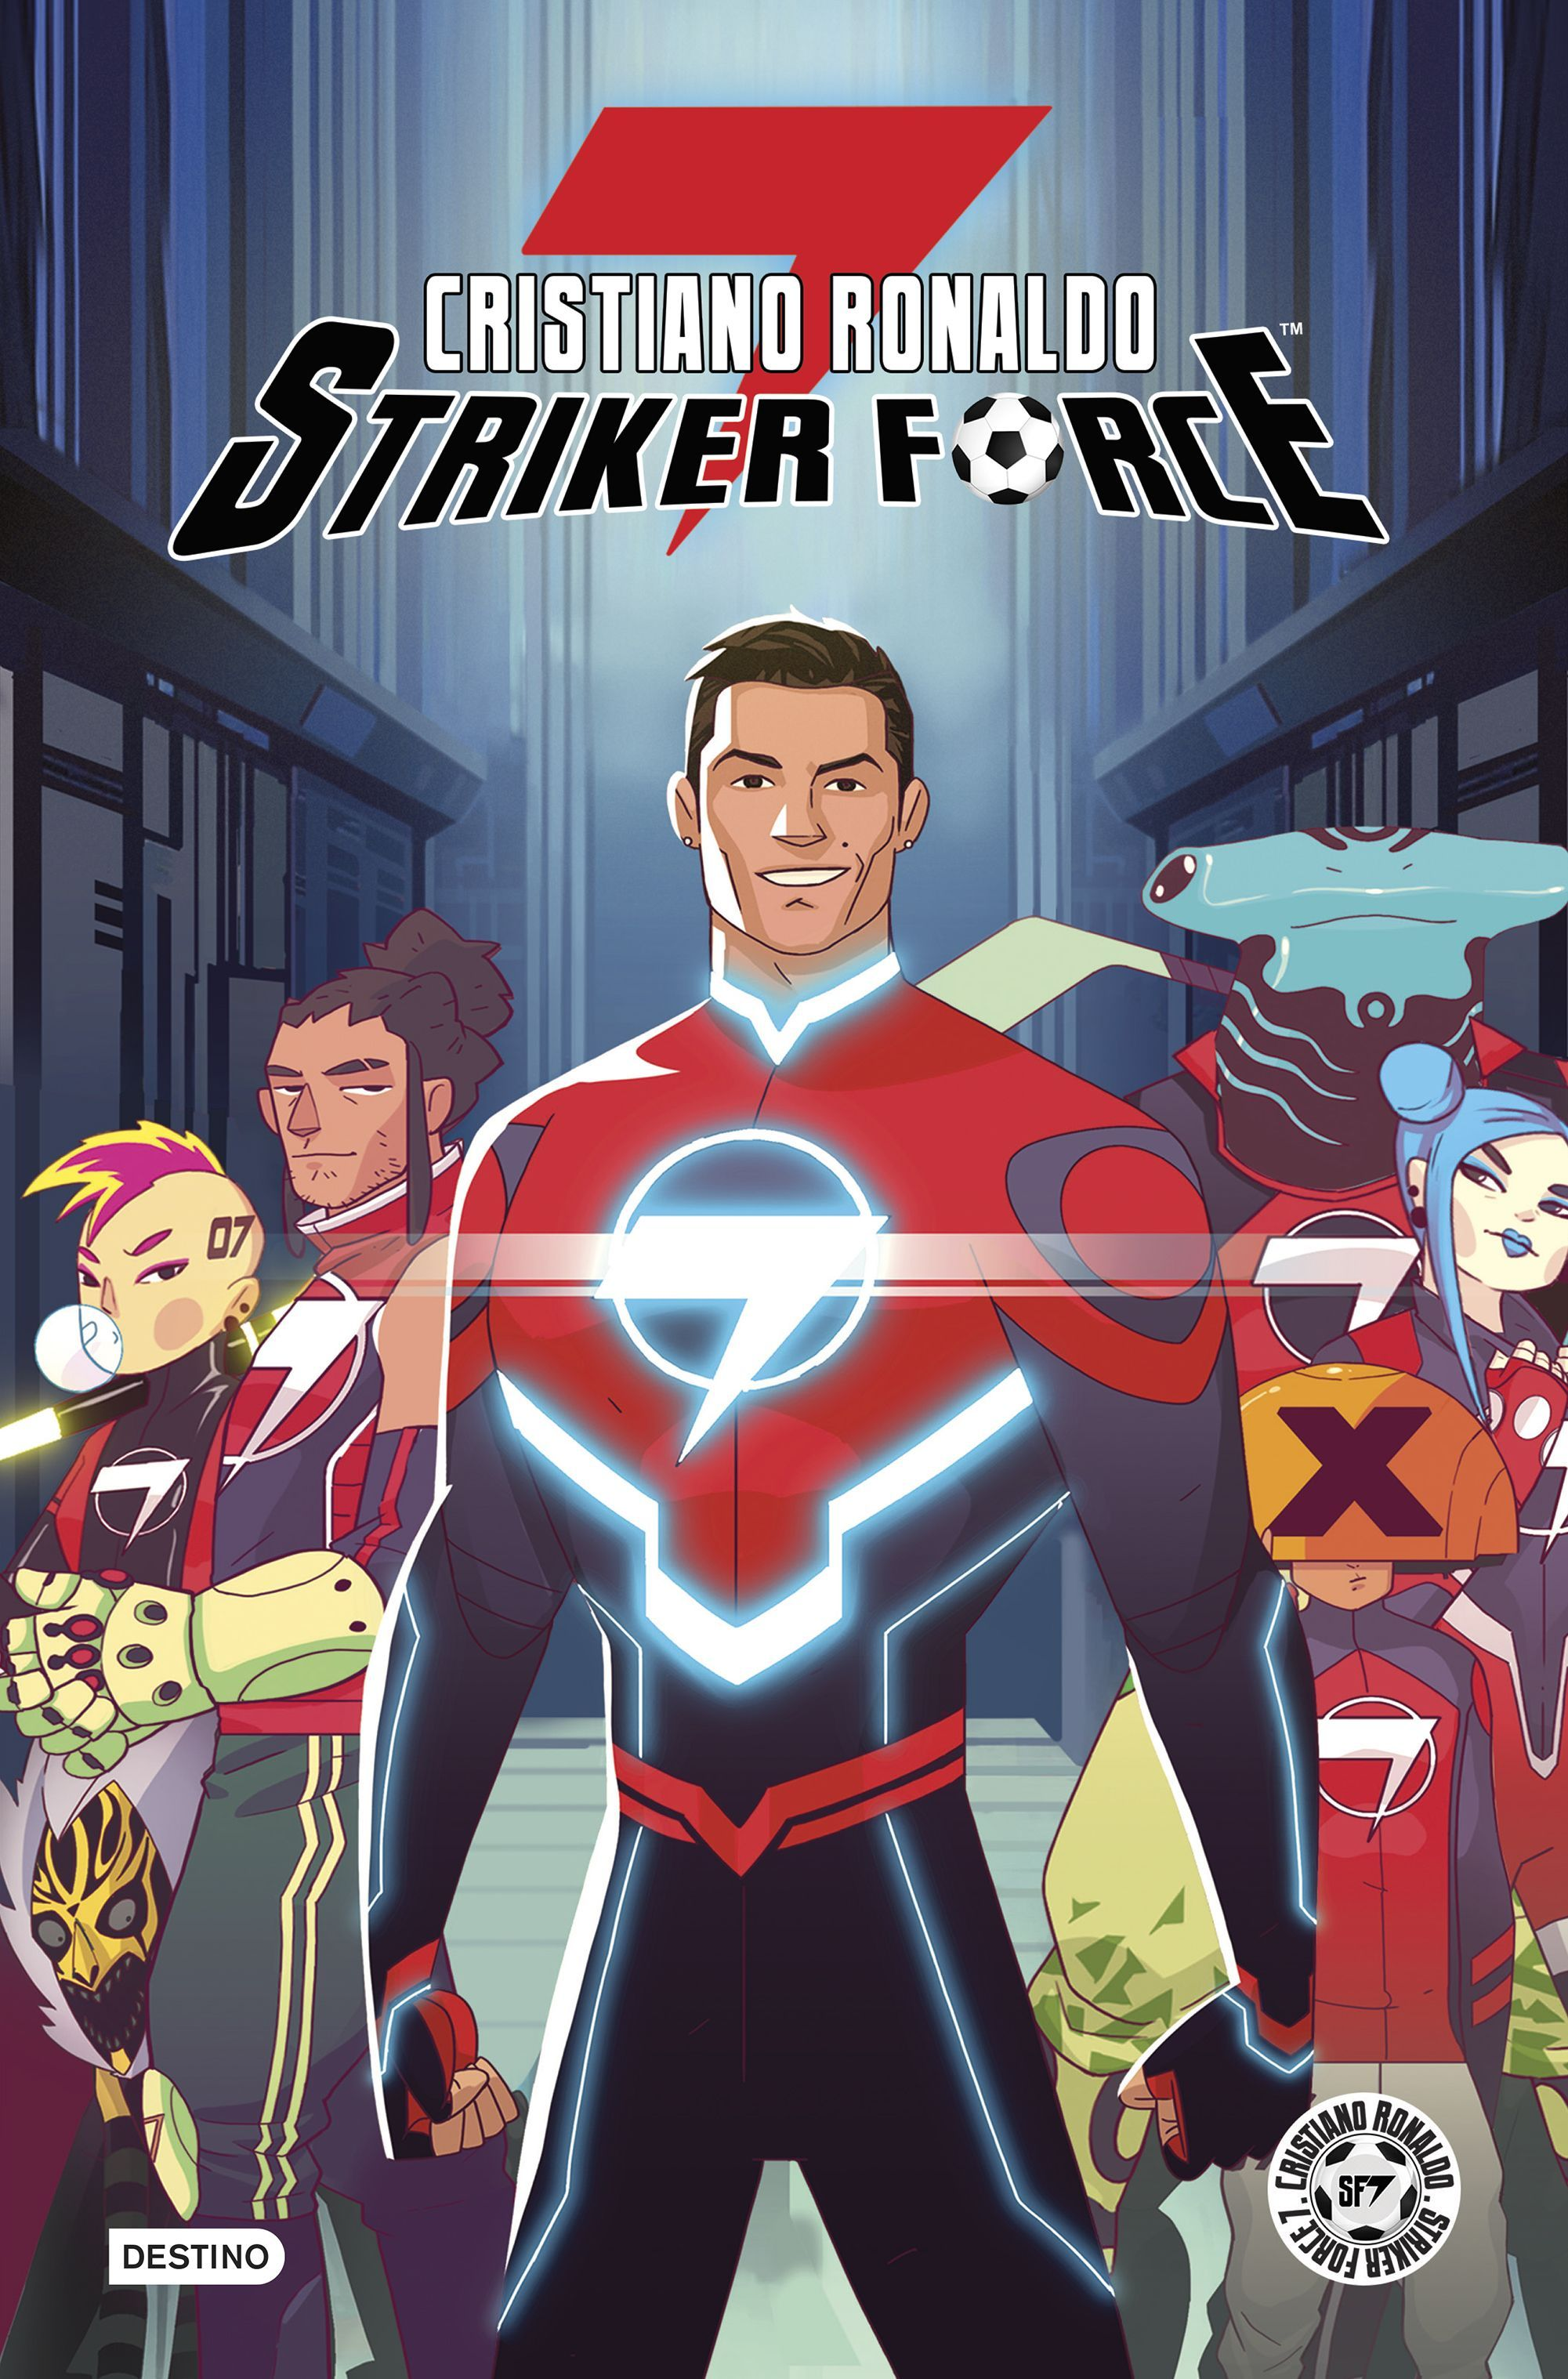 CRISTIANO RONALDO STRIKER FORCE 7 VOLUMEN 1